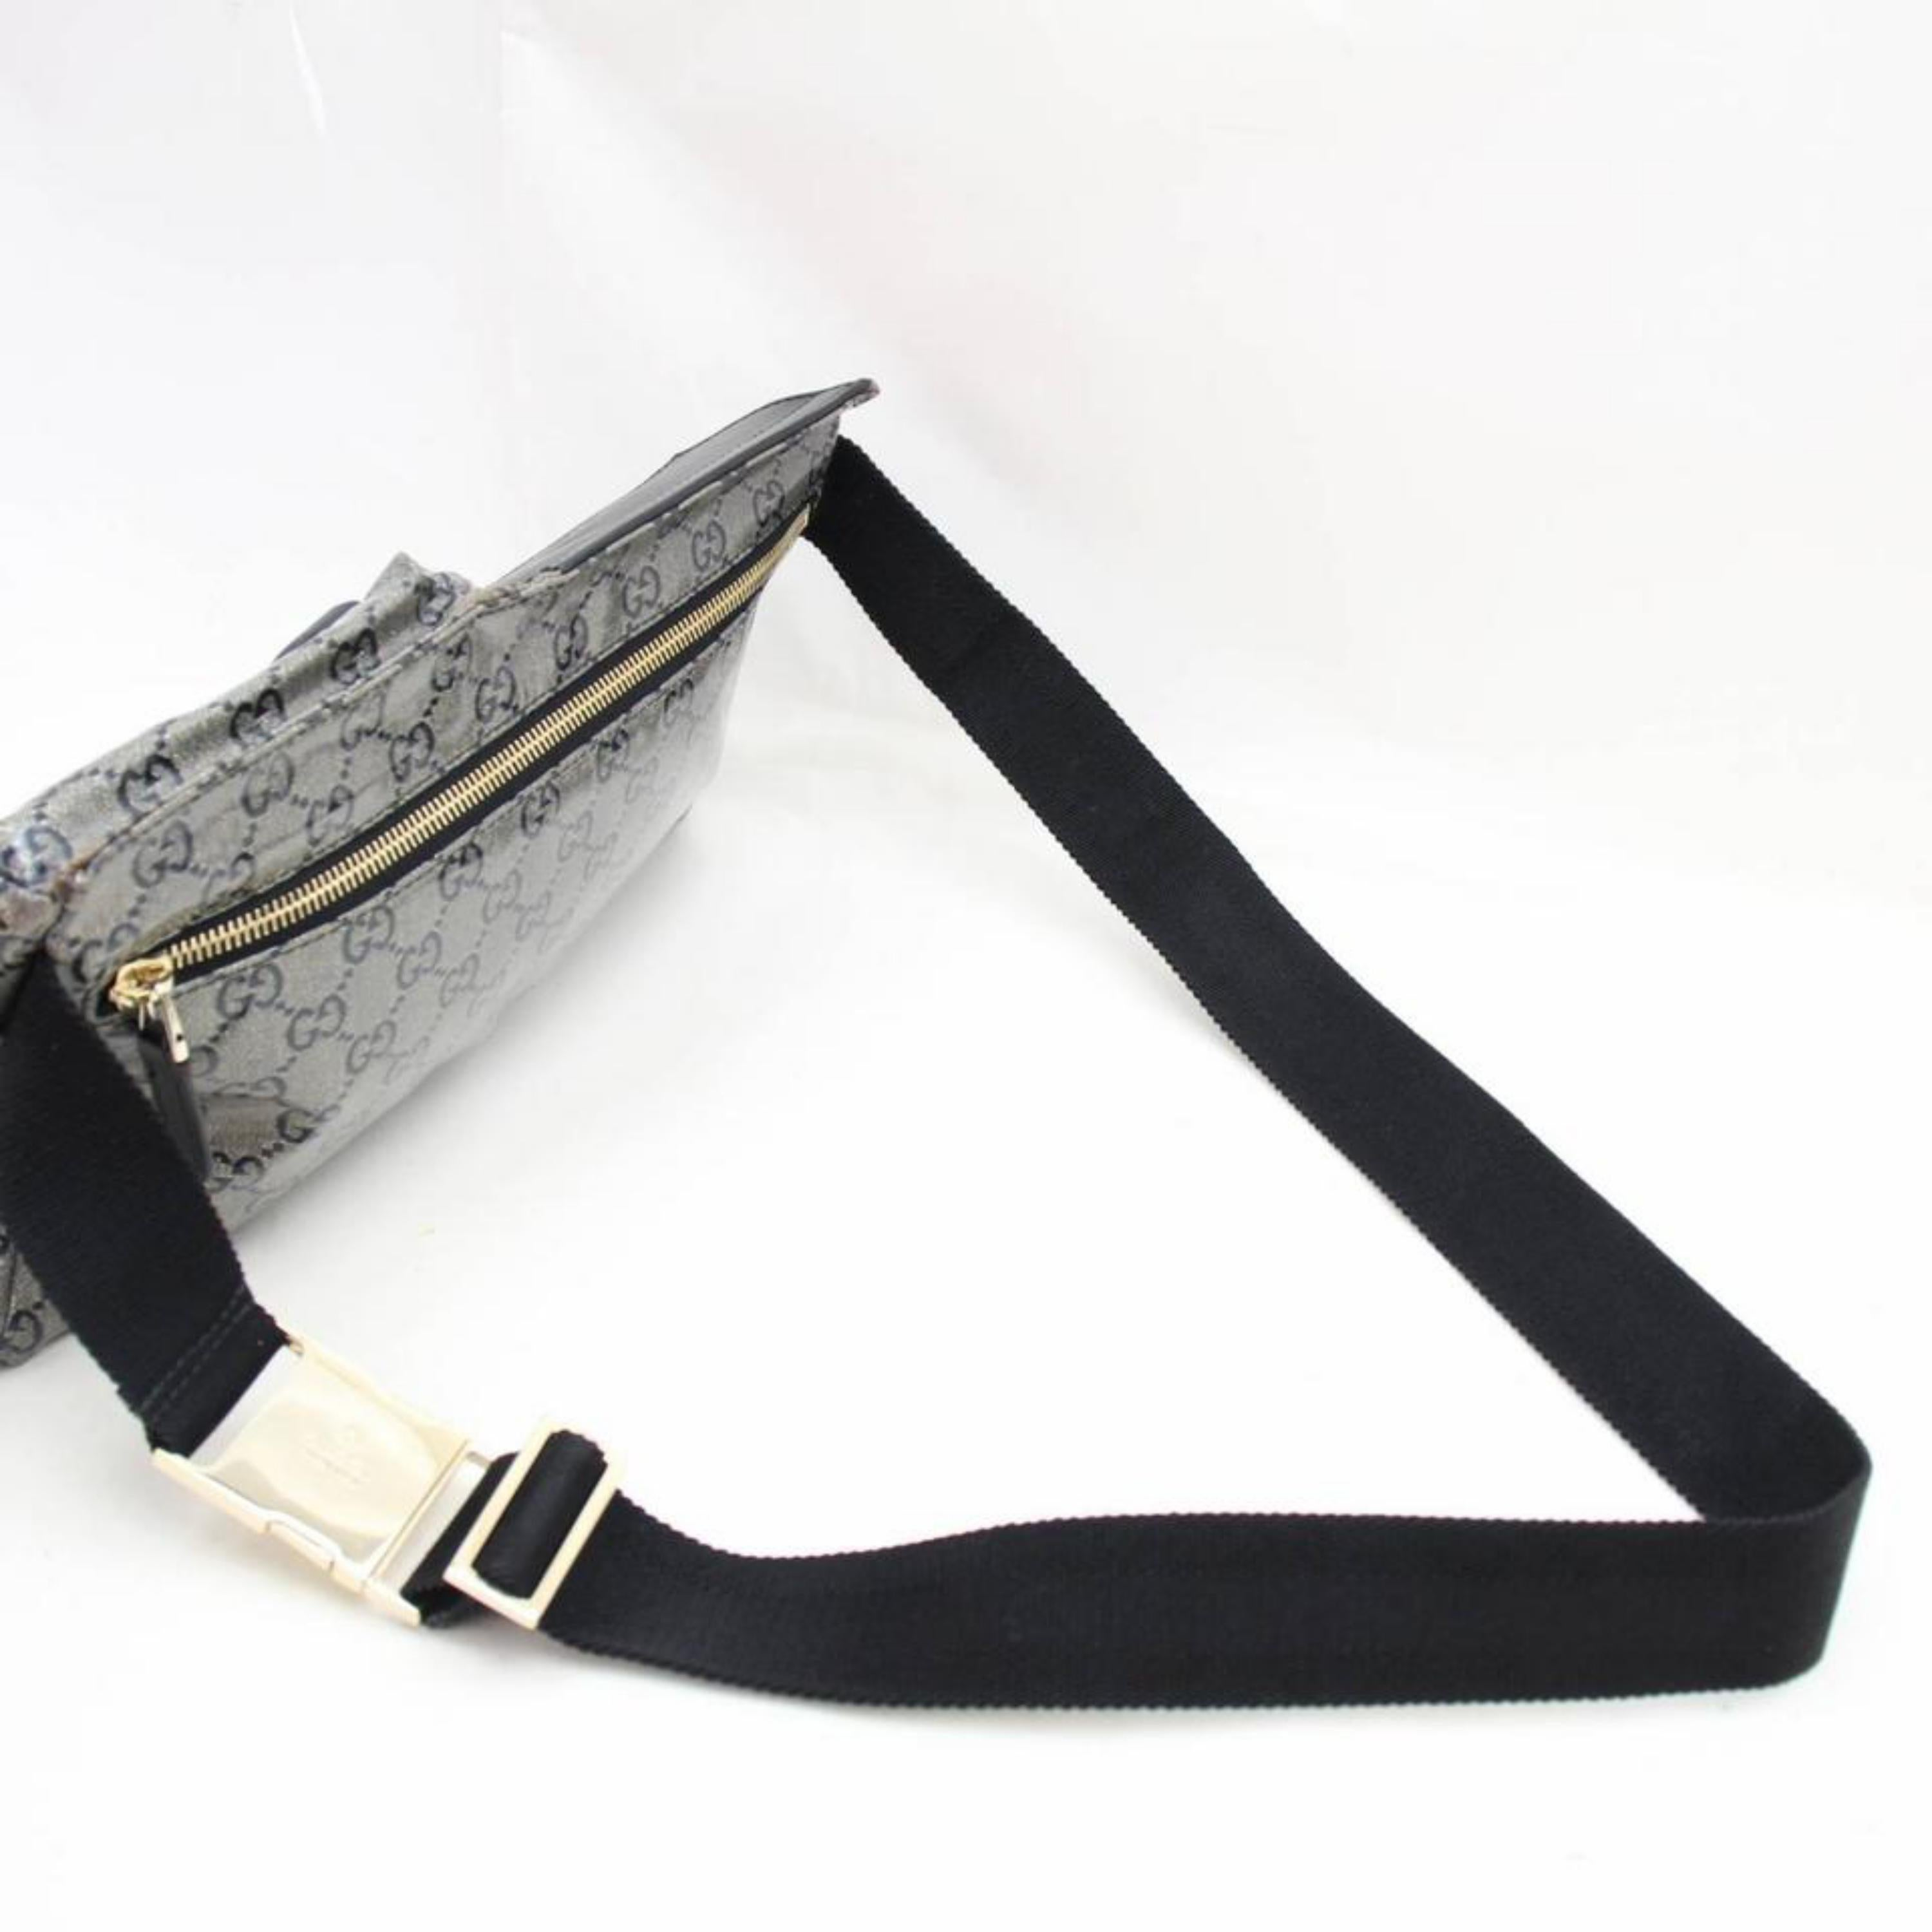 243ca61d514cda Gucci Crystal Monogram Belt Waist Pouch 867375 Grey Coated Canvas Cross  Body Bag For Sale at 1stdibs